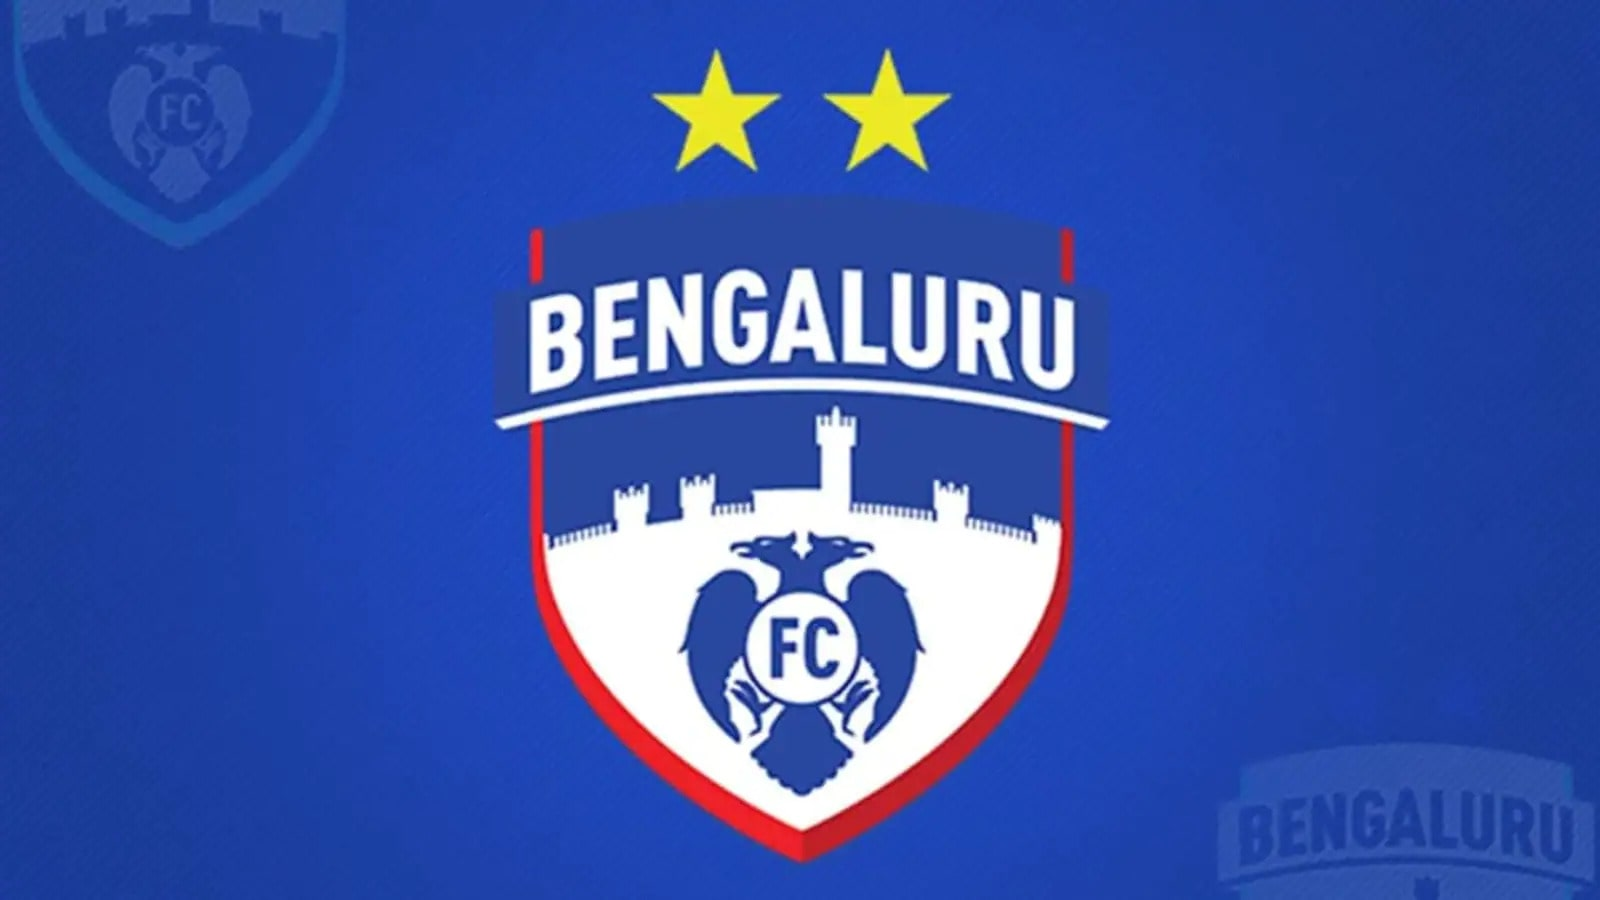 5 Best football clubs in India